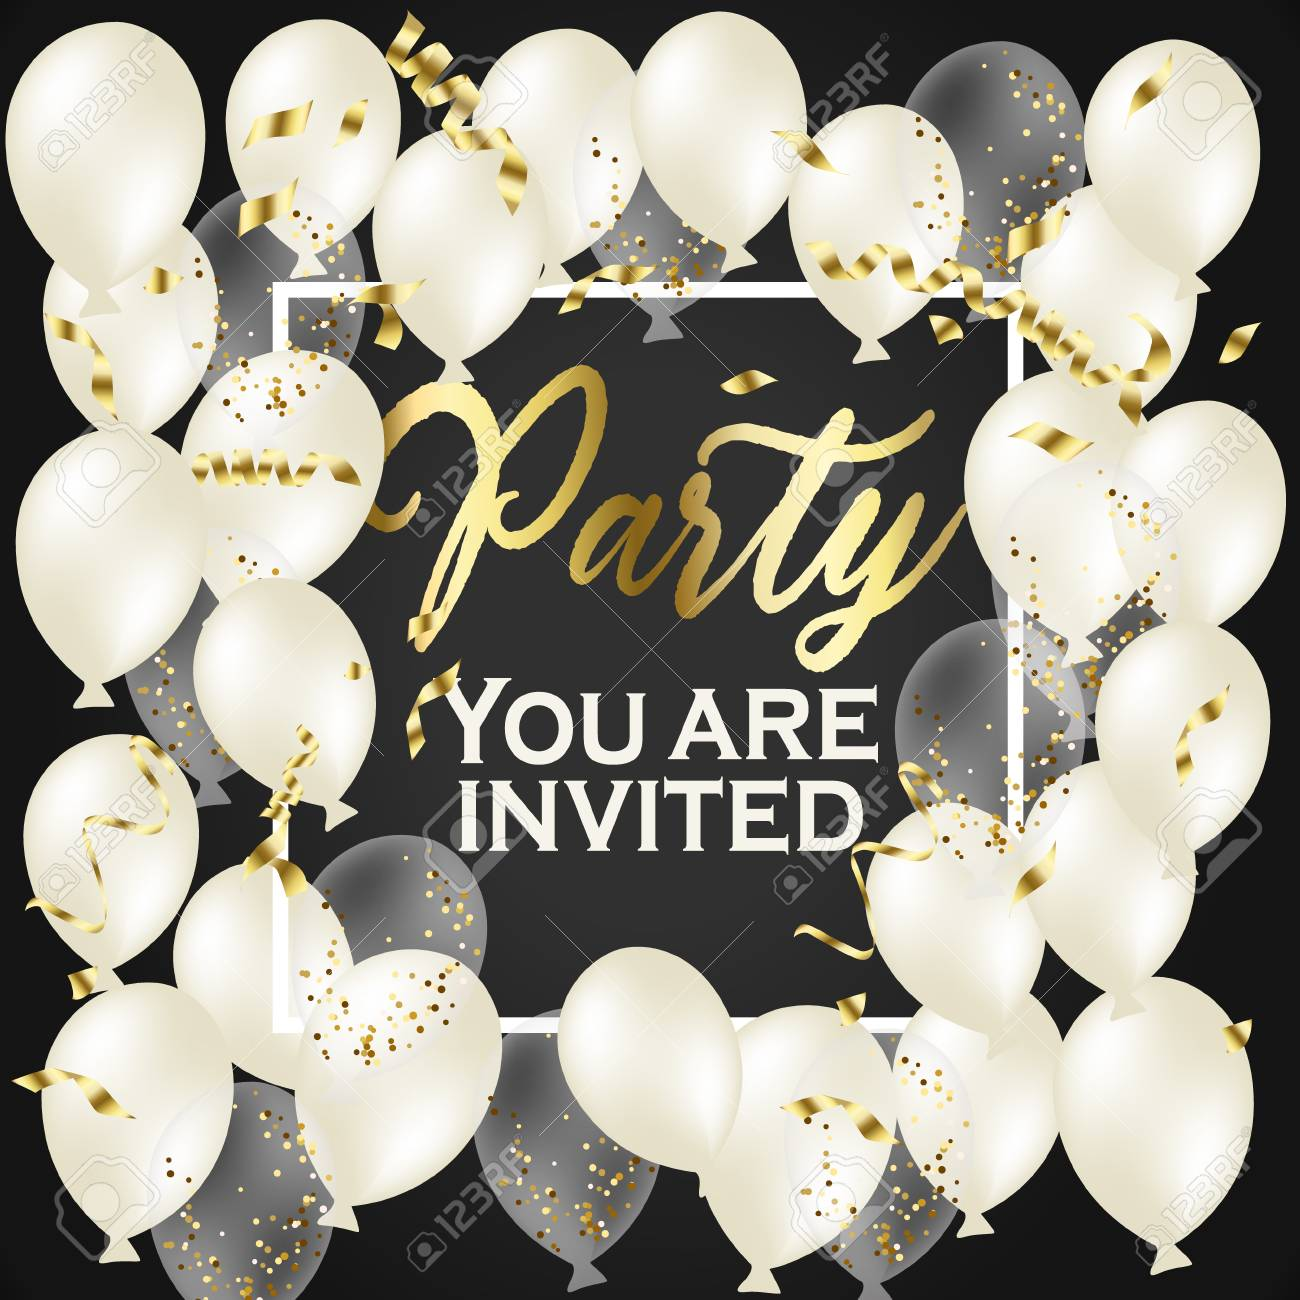 party invitation happy birthday banner gold heart transparent